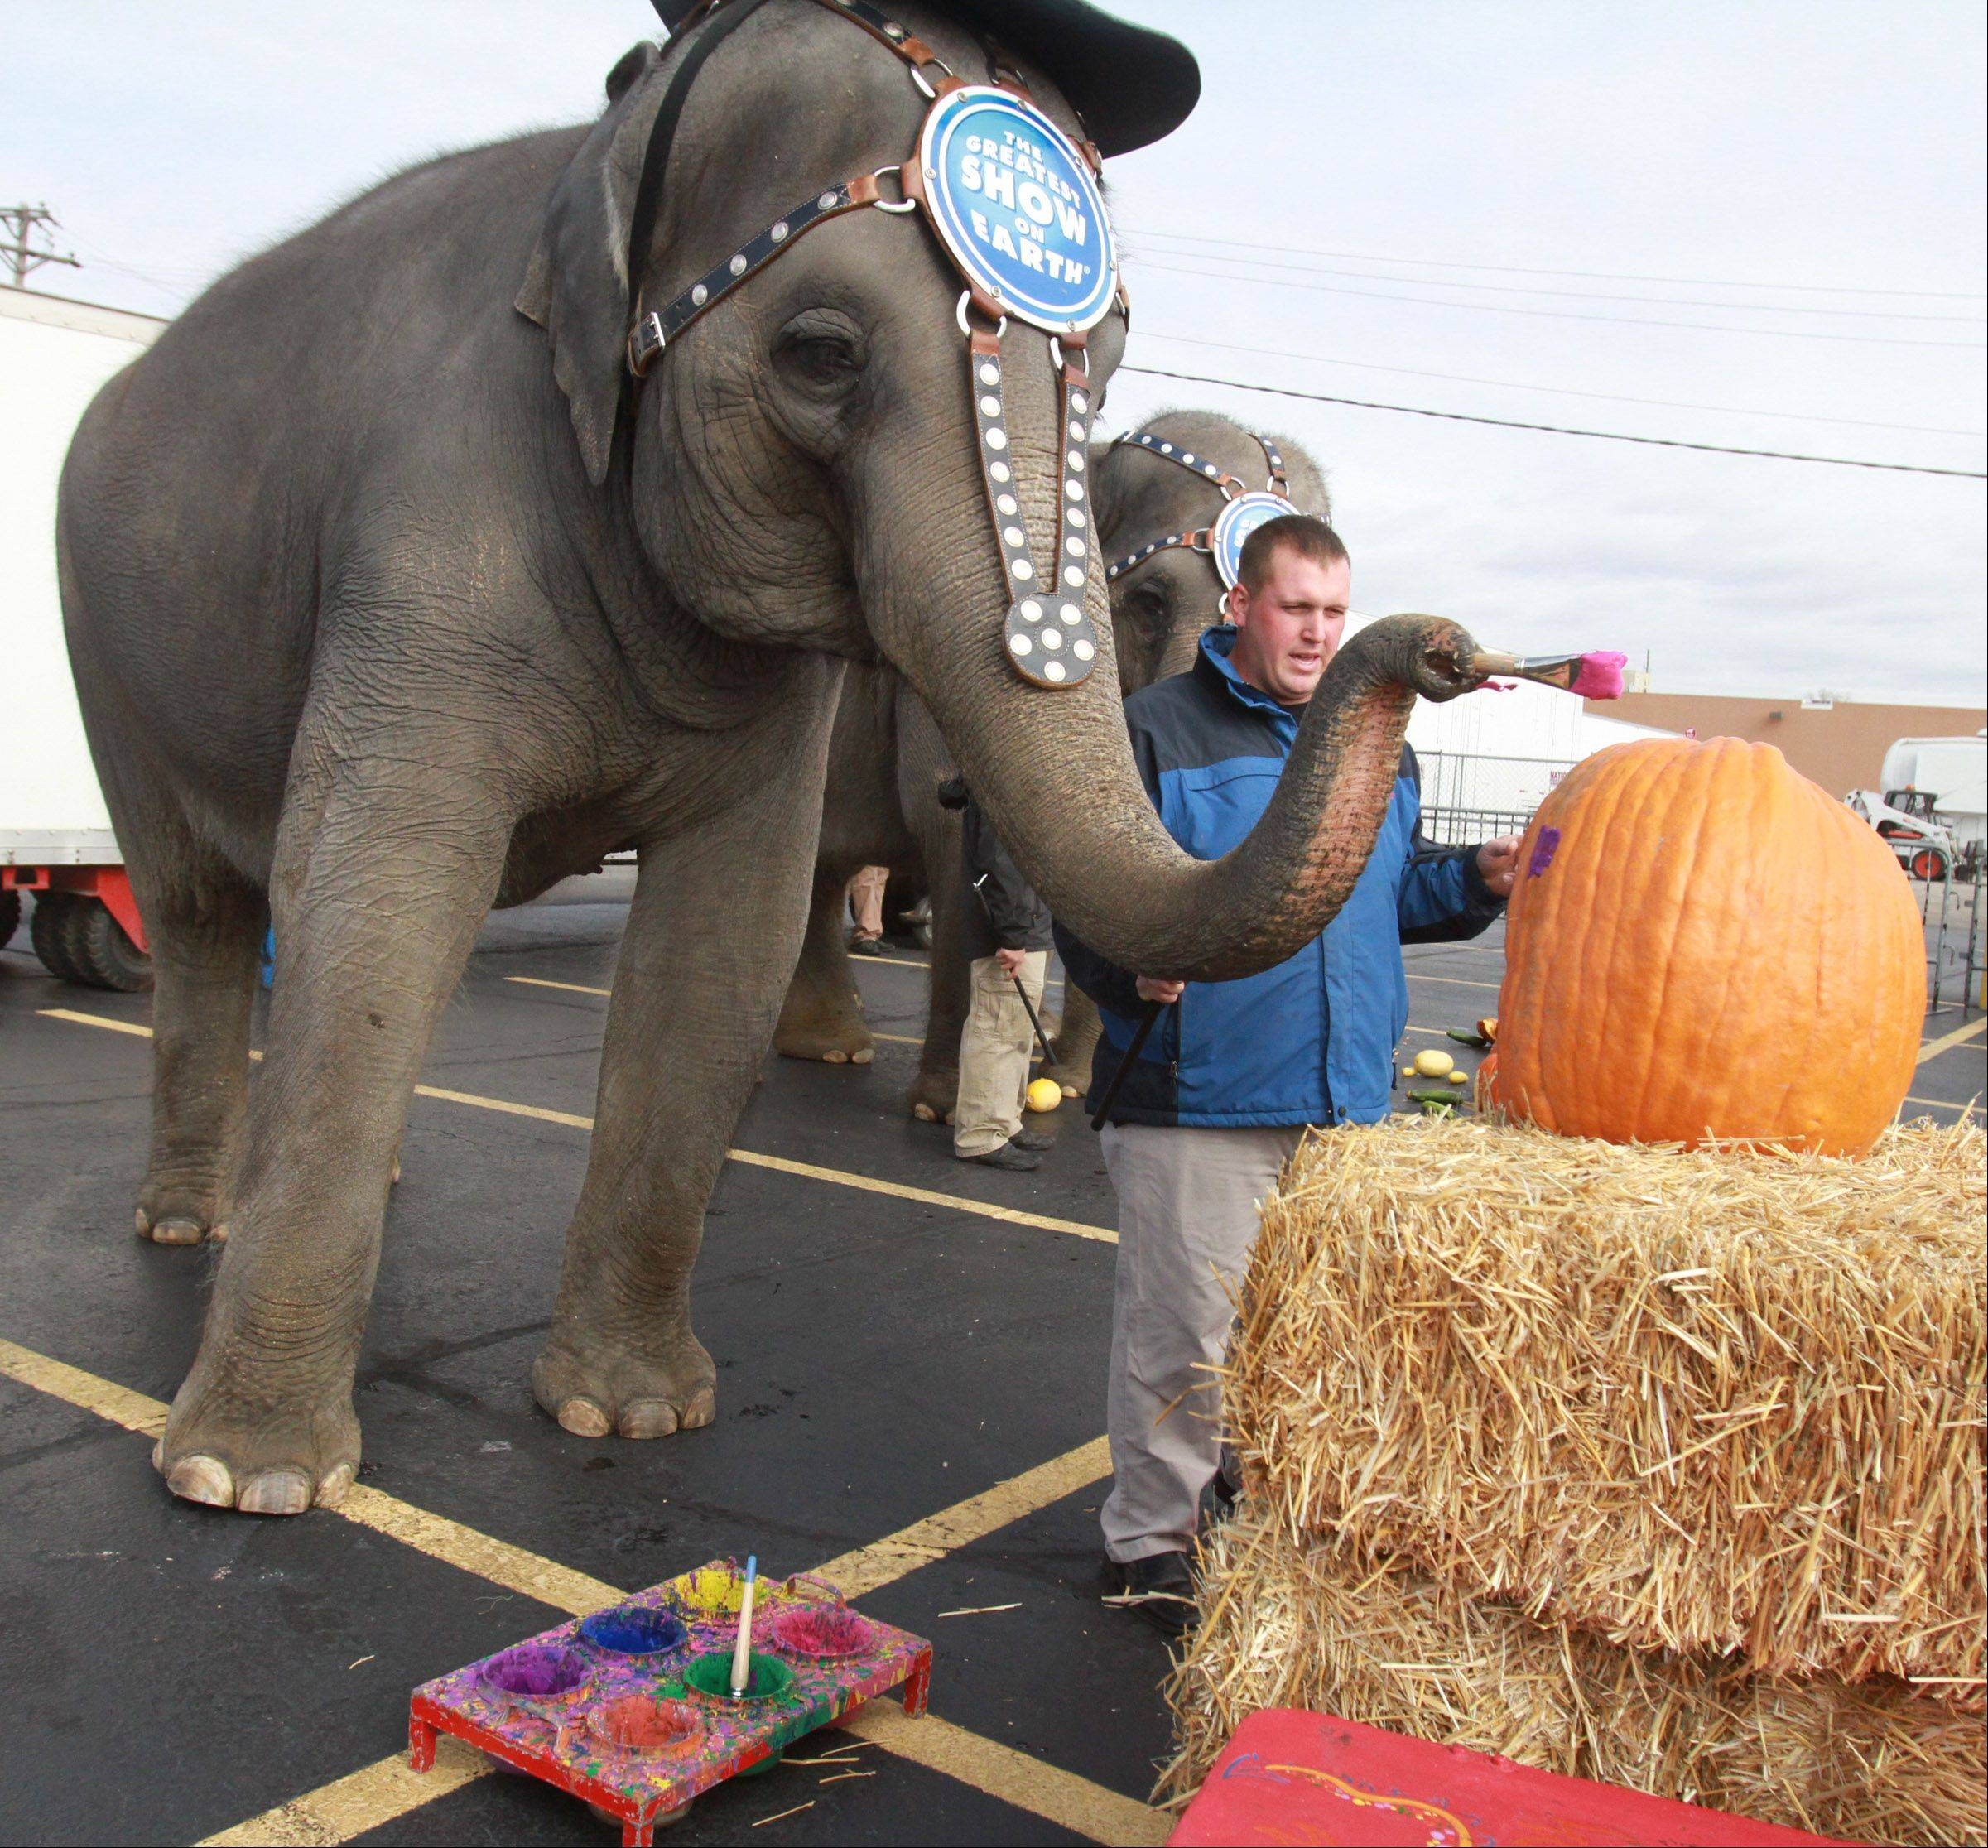 Ringling Brothers and Barnum and Bailey Circus Asian elephant Kelly Ann paints a pumpkin with instructions from Joey Frisco, senior elephant trainer, to kick off the arrival of the circus to at Allstate Arena in Rosemont on Wednesday, October 31.